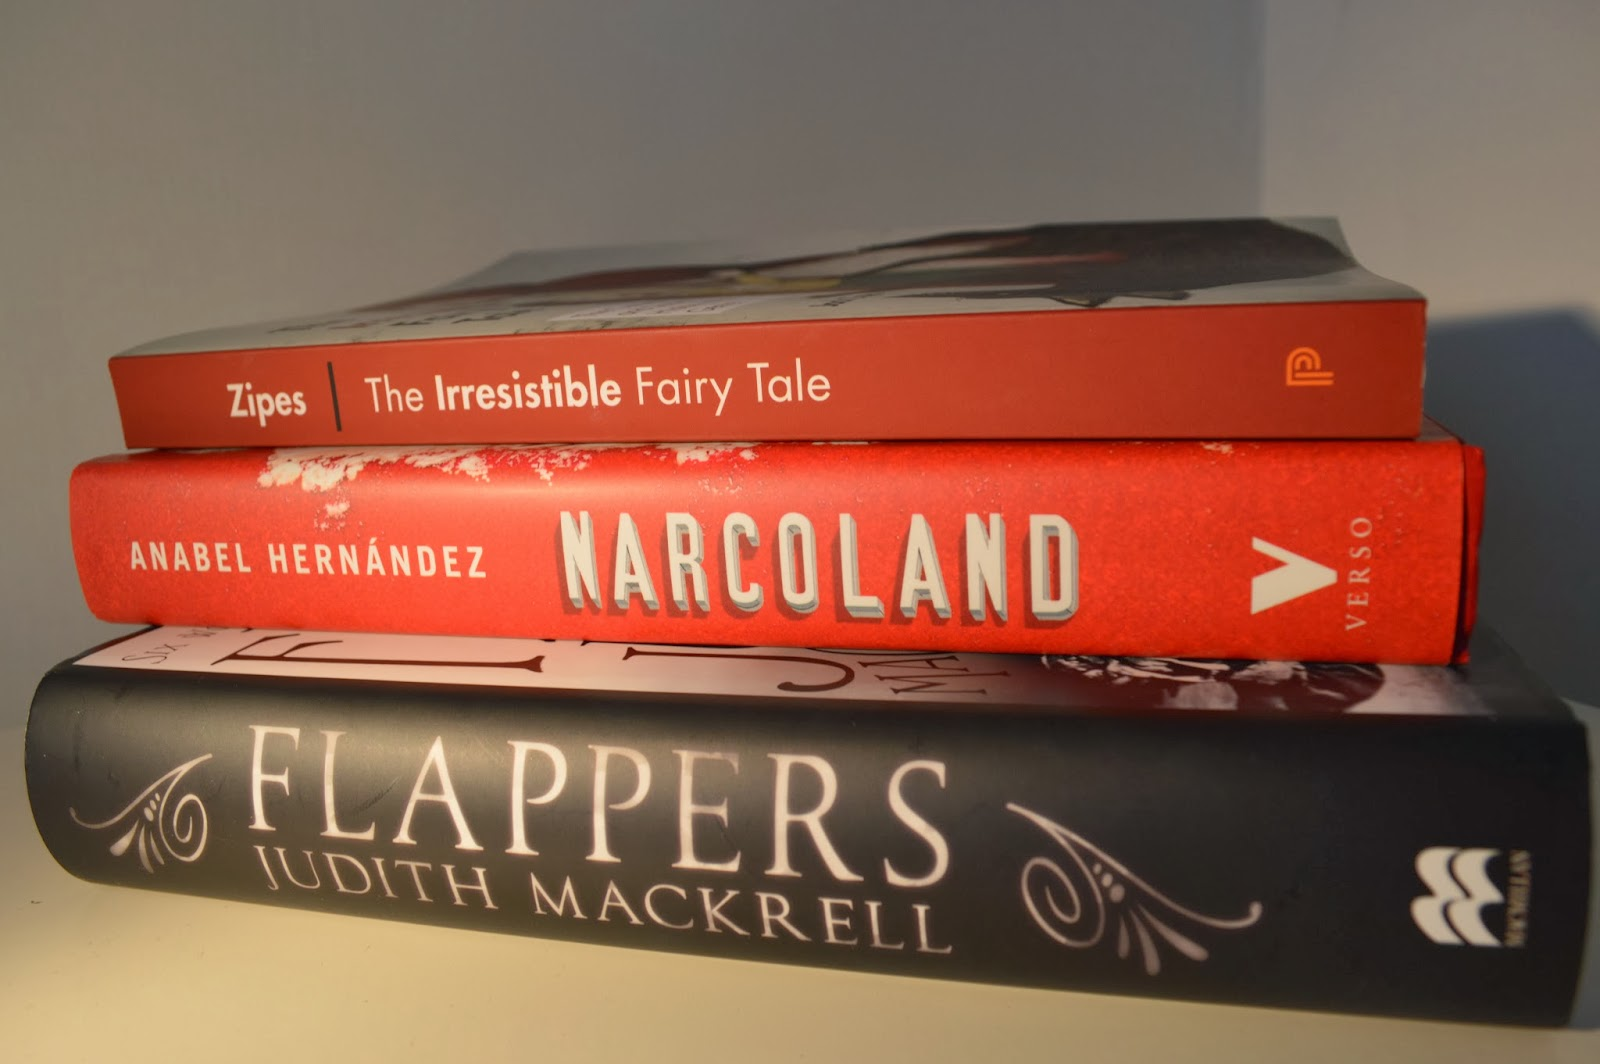 Flappers, Narcoland, The Irresistible Fairy Tale, photography, book spine